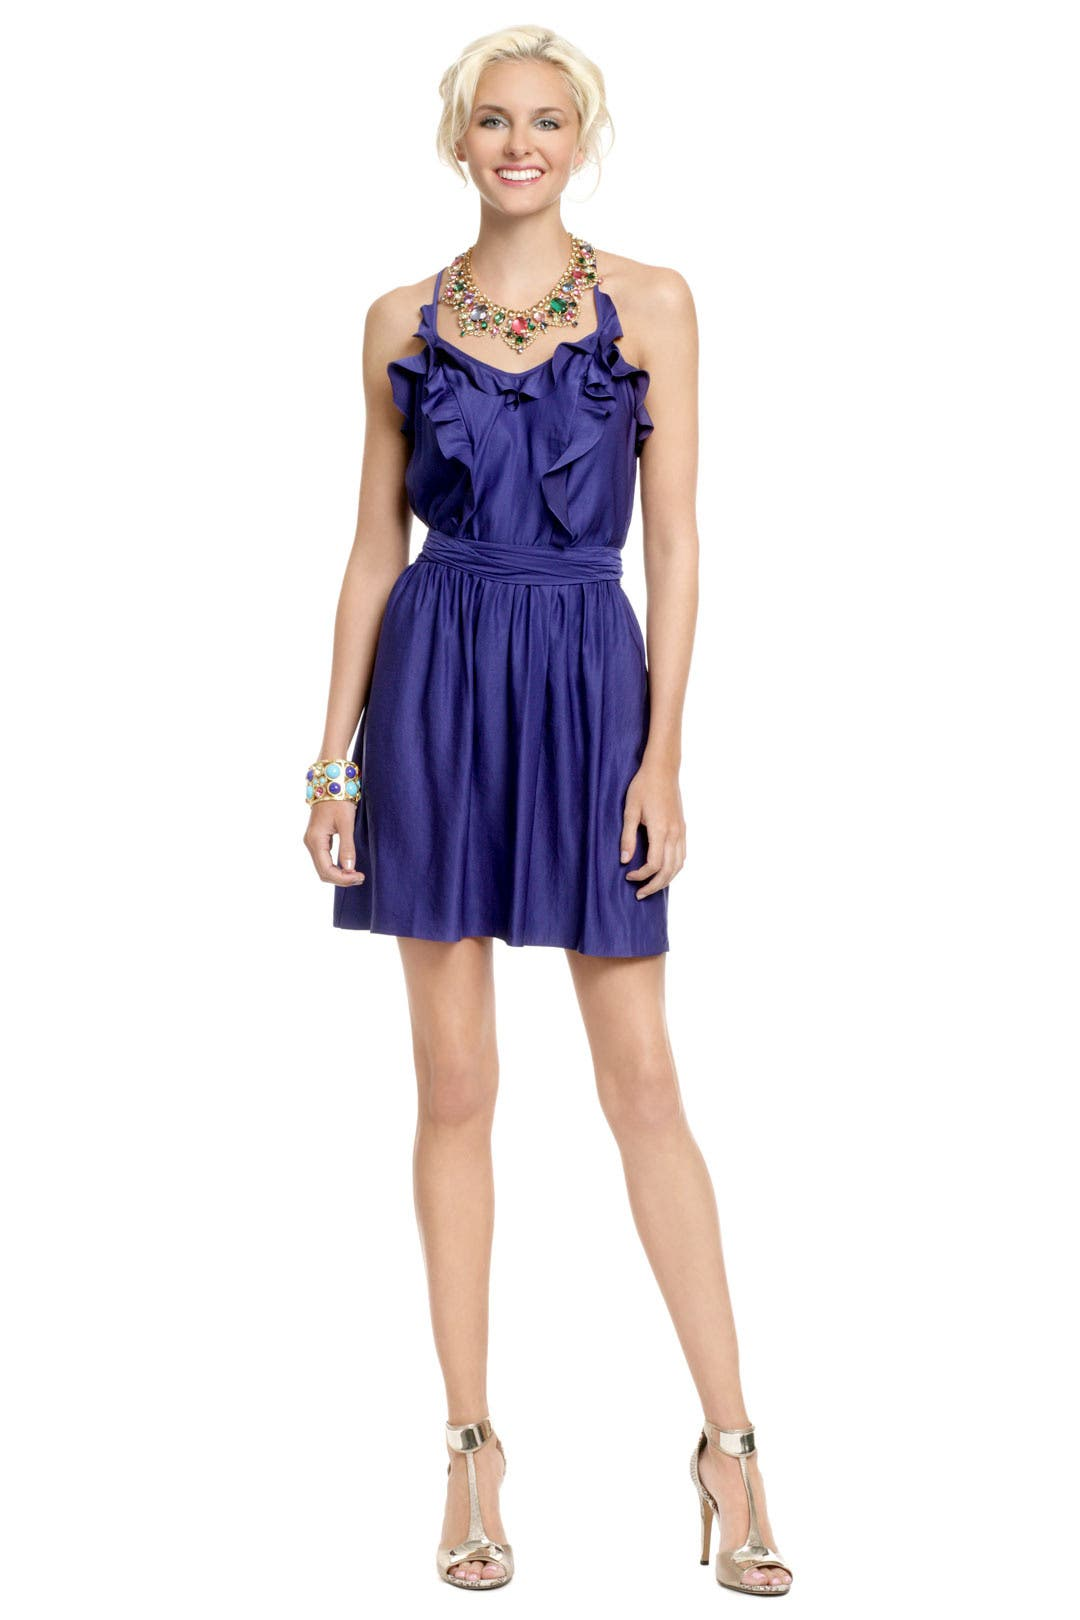 Homecoming Queen Dress by Rebecca Taylor for $42 - Rent the Runway